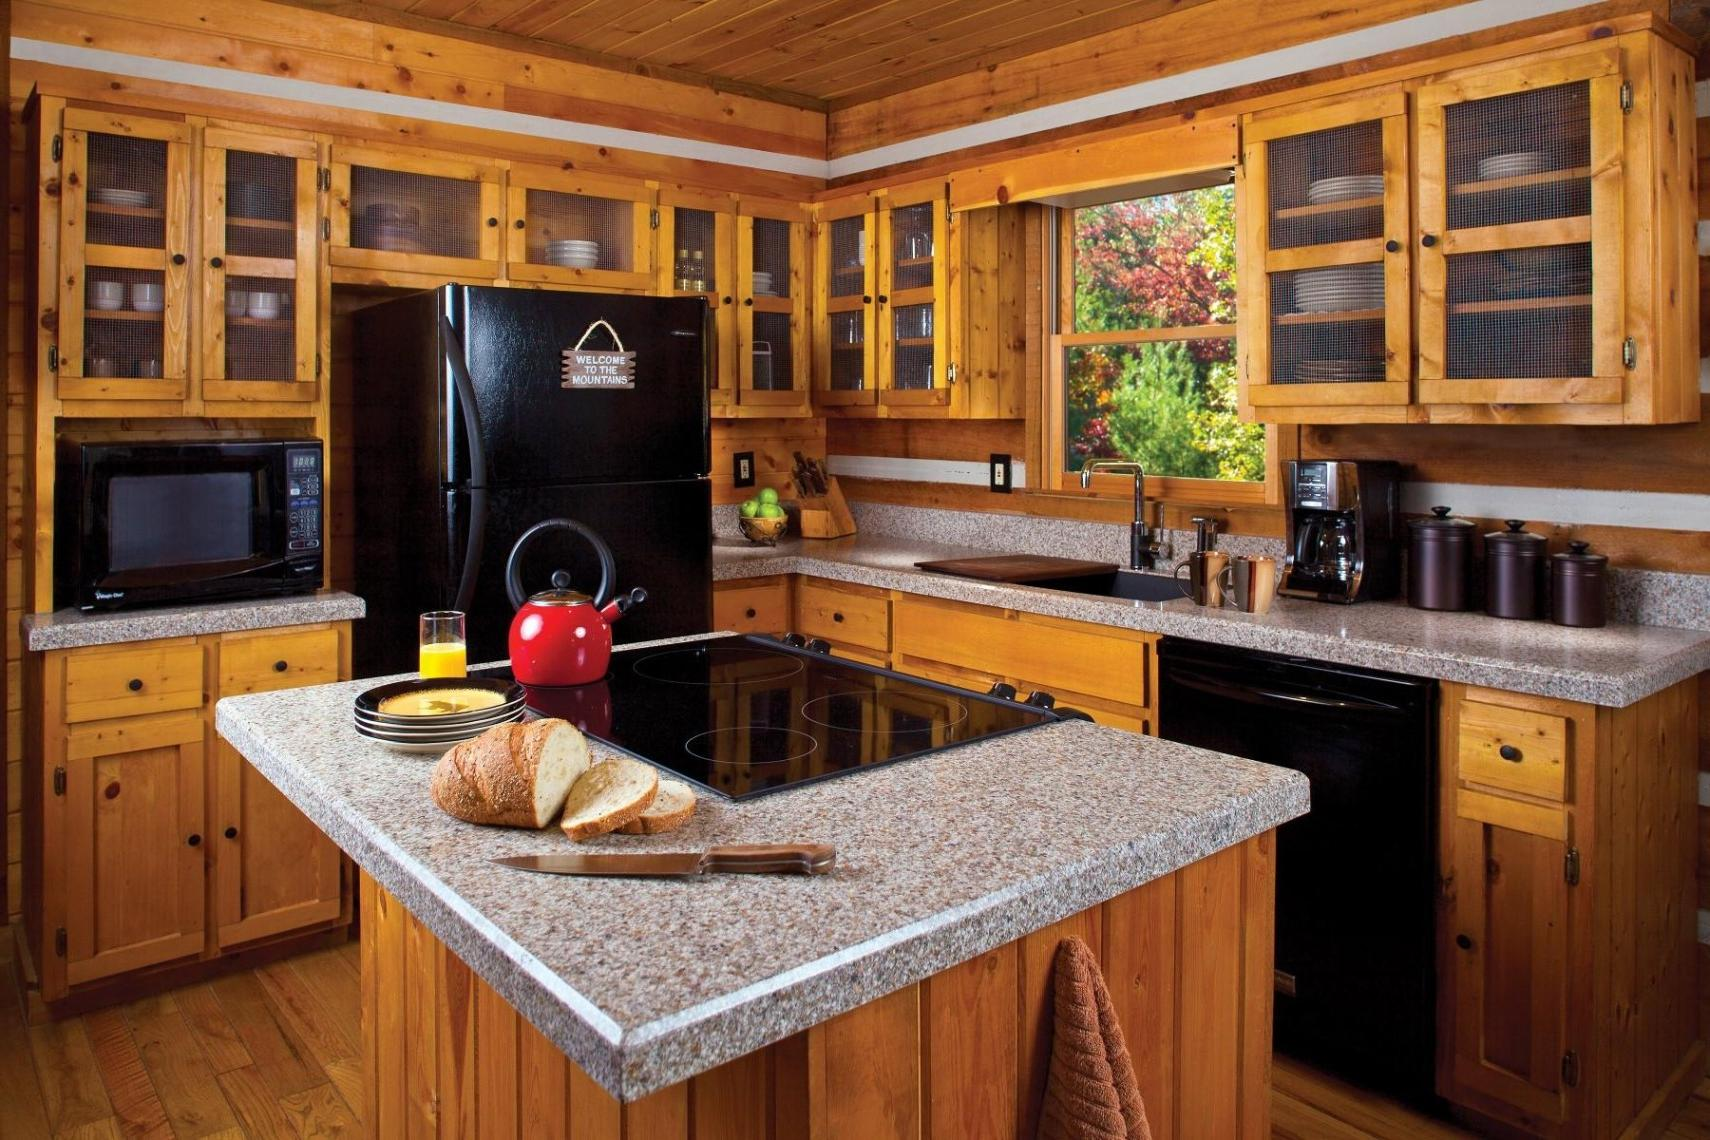 kitchen-island-with-stove-amazing-on-home-furniture-for-islands-2